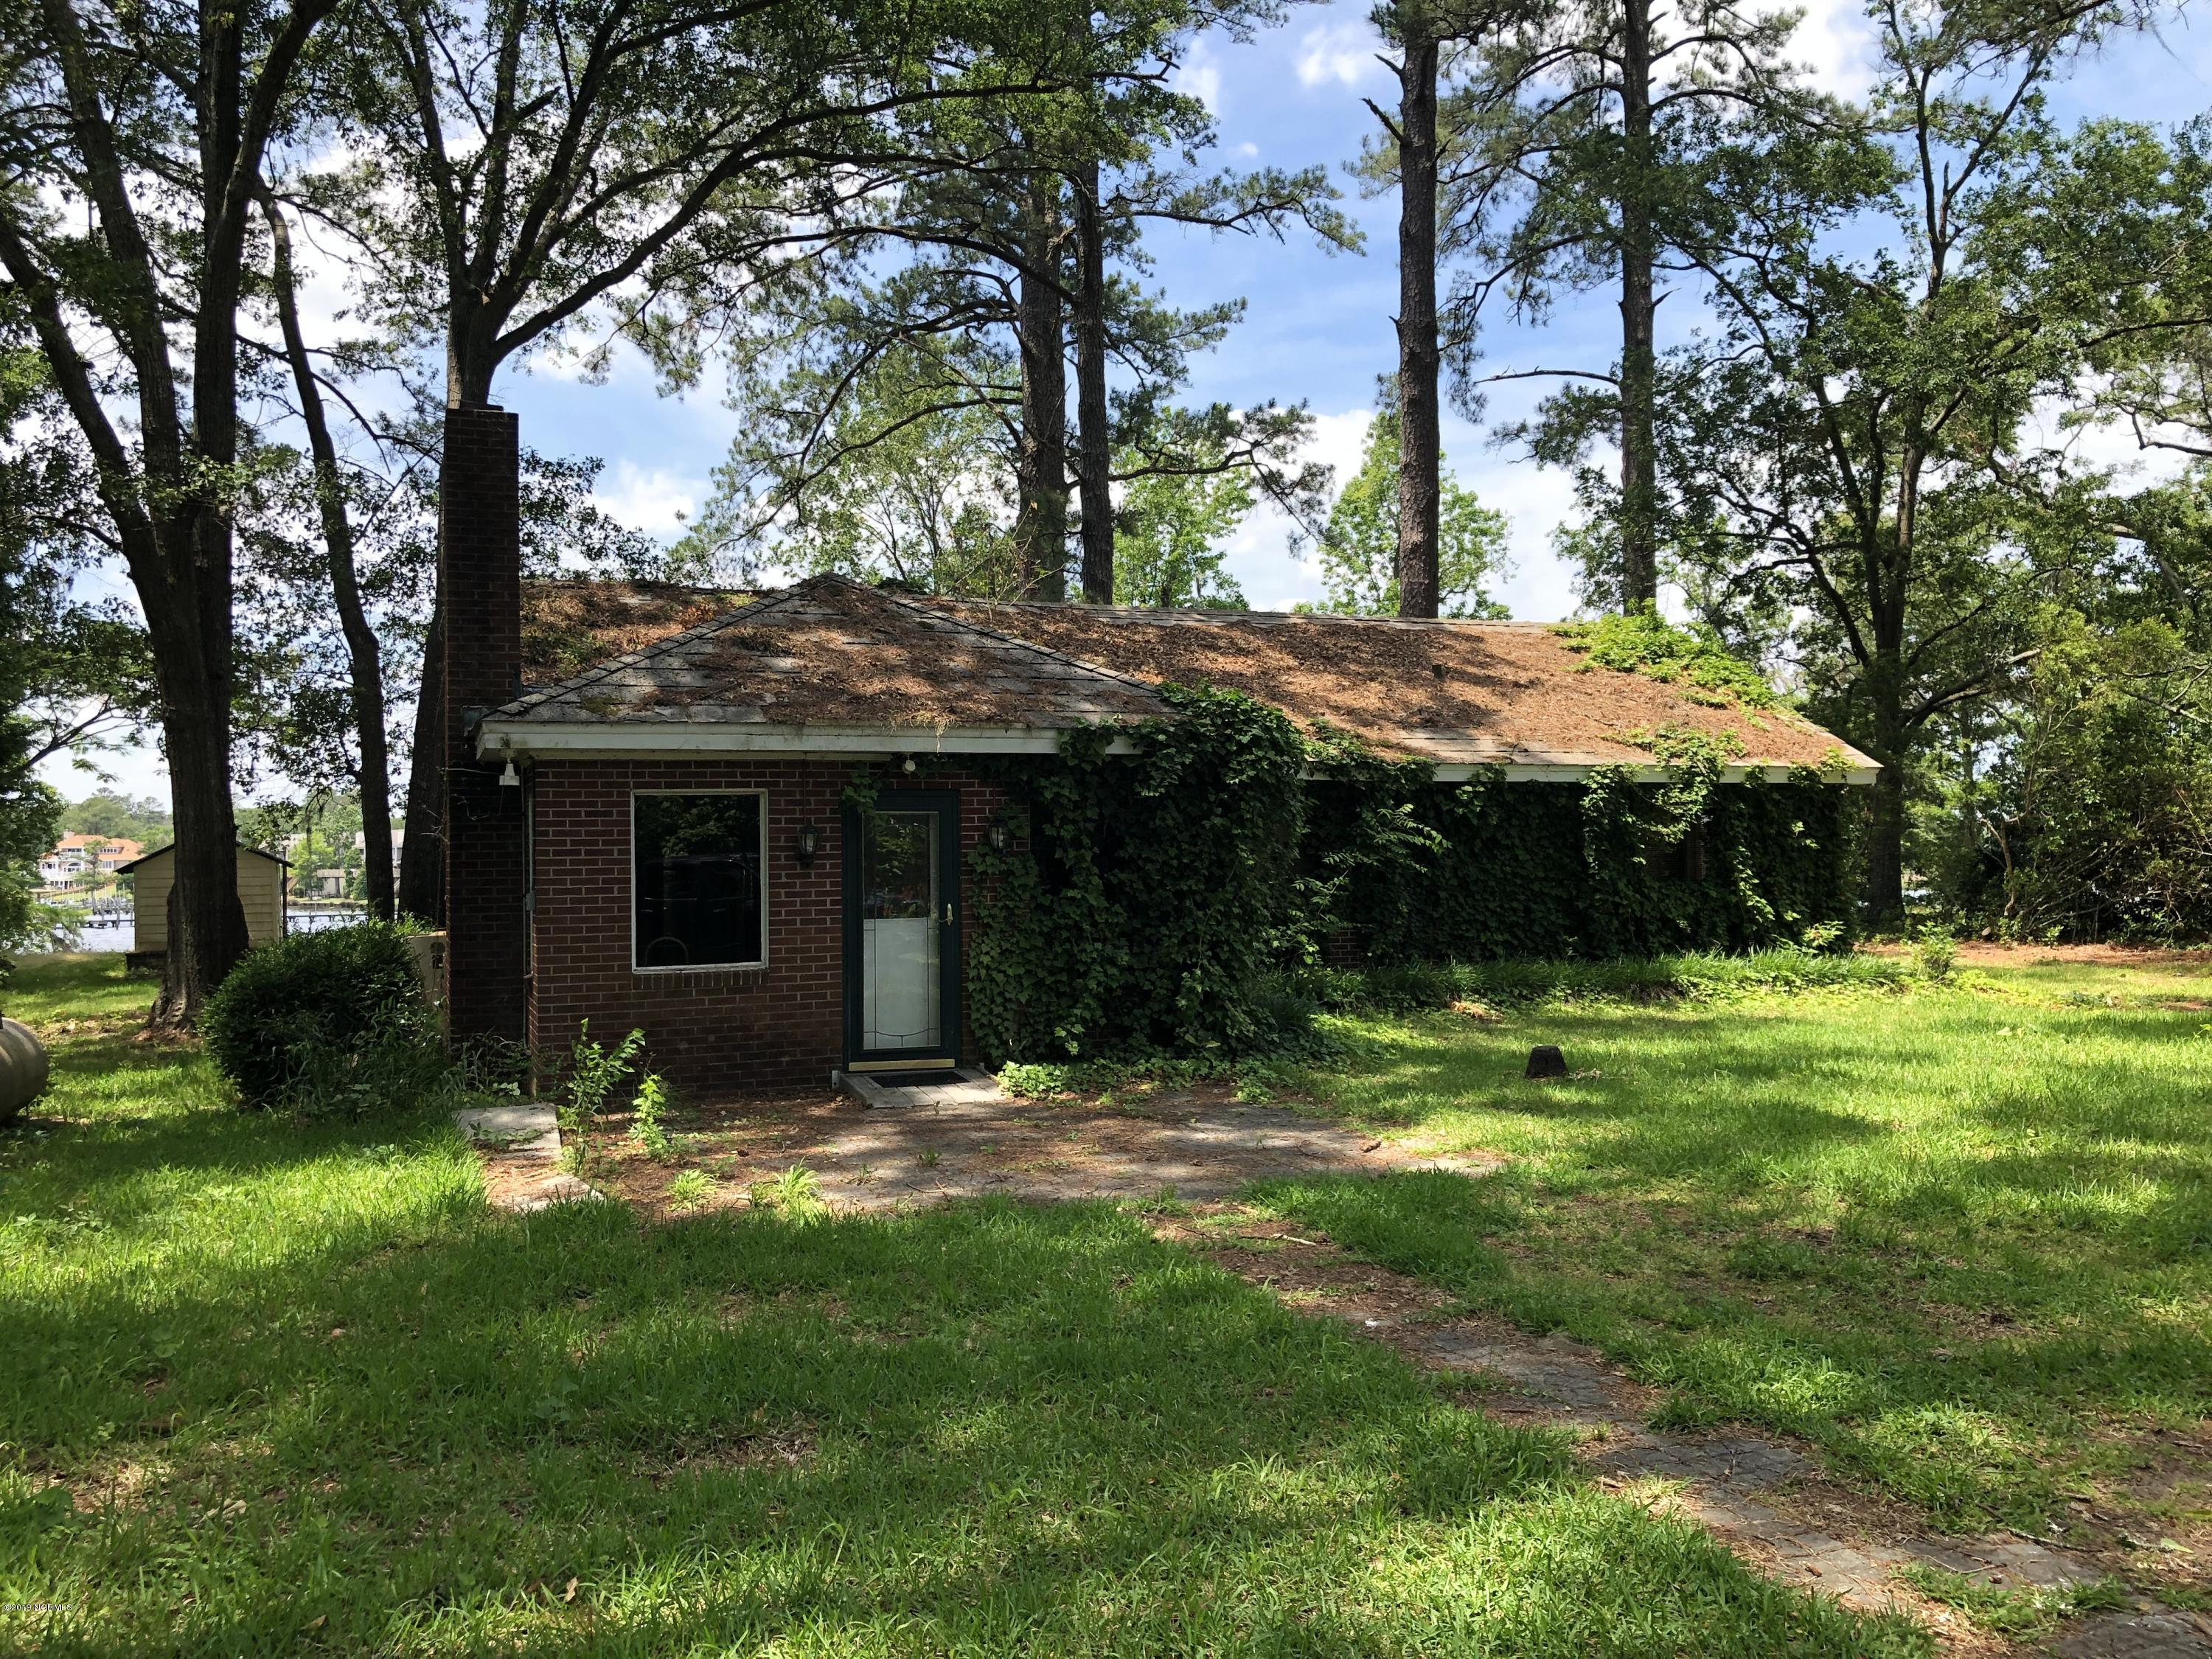 806 Madam Moores Lane, New Bern, North Carolina 28562, 3 Bedrooms Bedrooms, 7 Rooms Rooms,1 BathroomBathrooms,Single family residence,For sale,Madam Moores,100165994